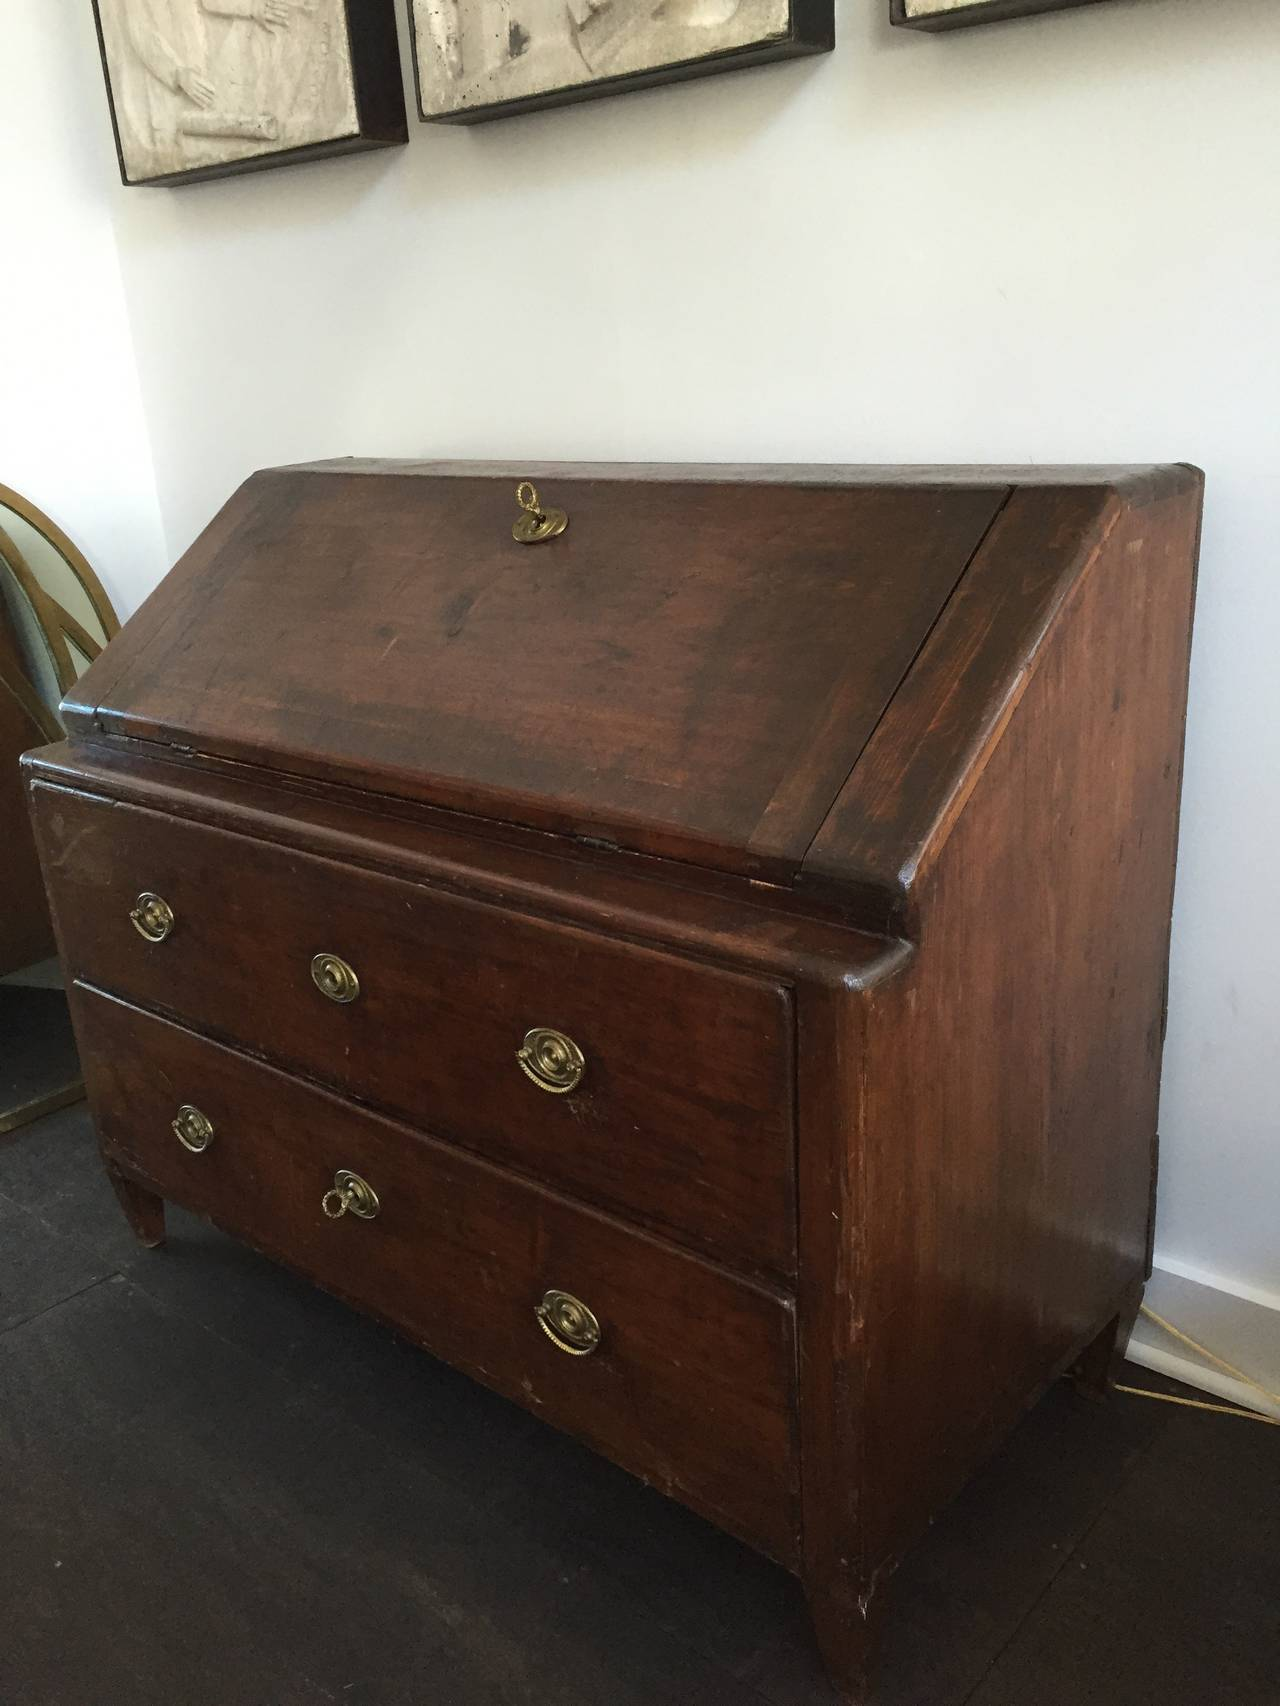 19th Century Secretary with Drop Down Desk For Sale at 1stdibs